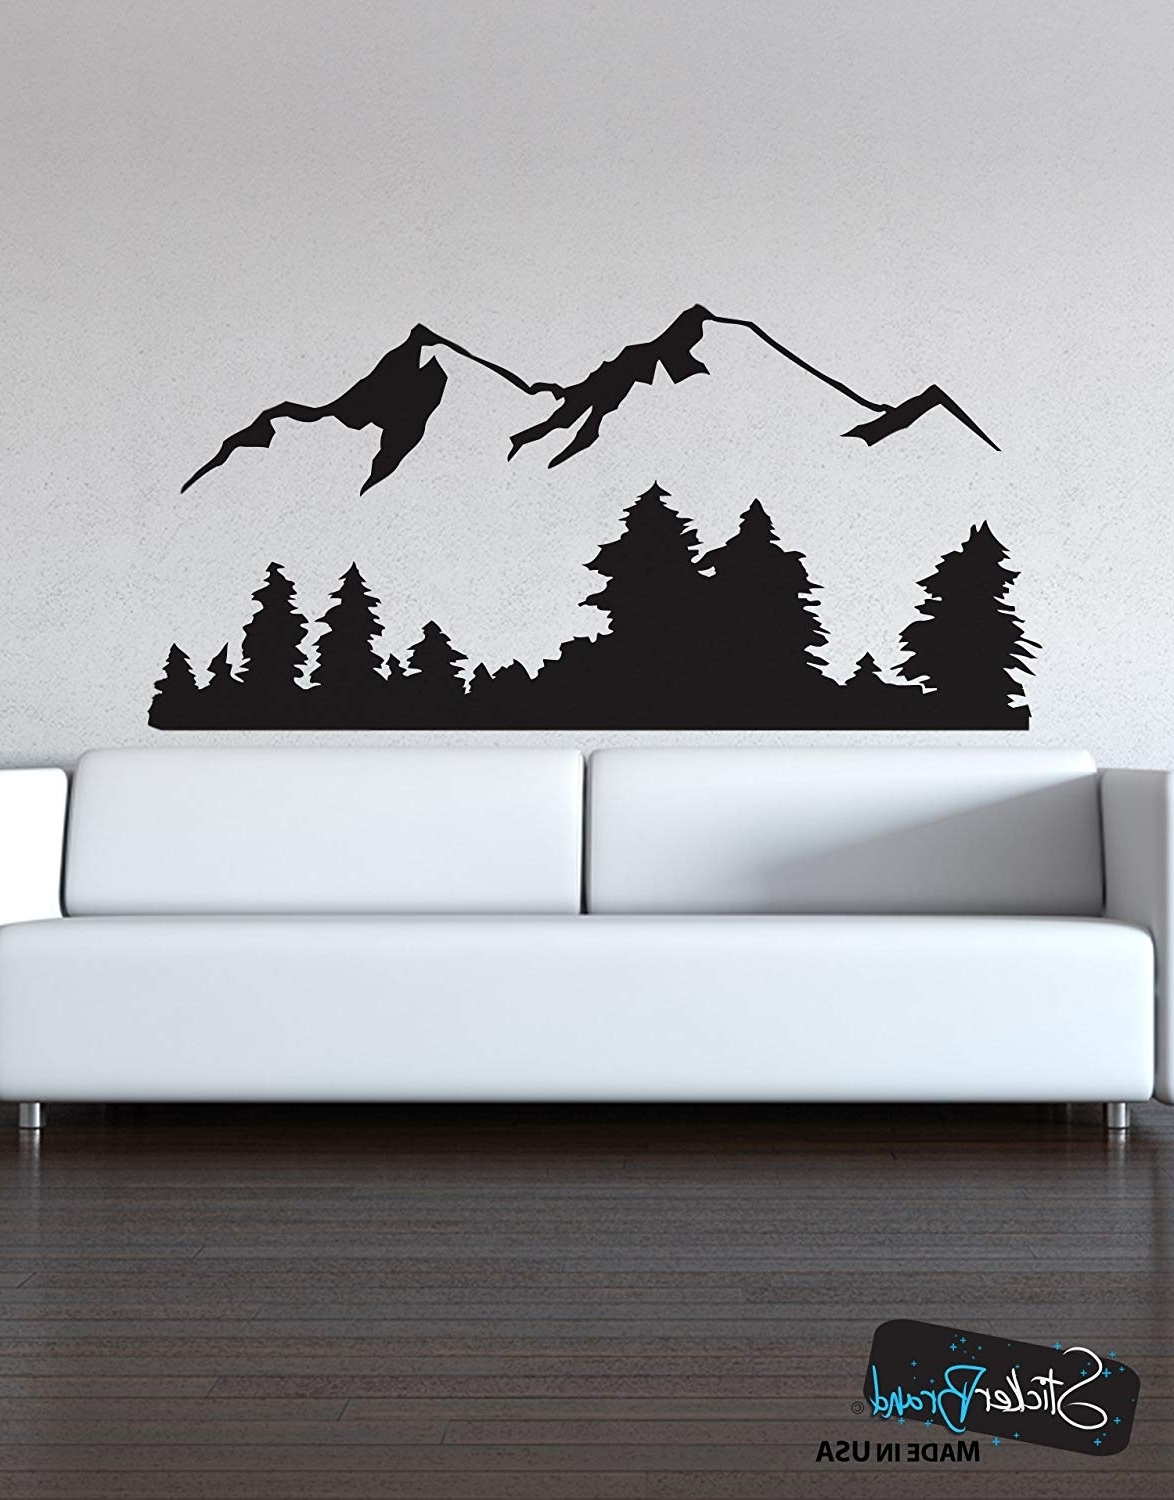 Well Liked Vinyl Wall Art Regarding Amazon: Stickerbrand Landscapes Vinyl Wall Art Snowy Mountain (View 15 of 15)